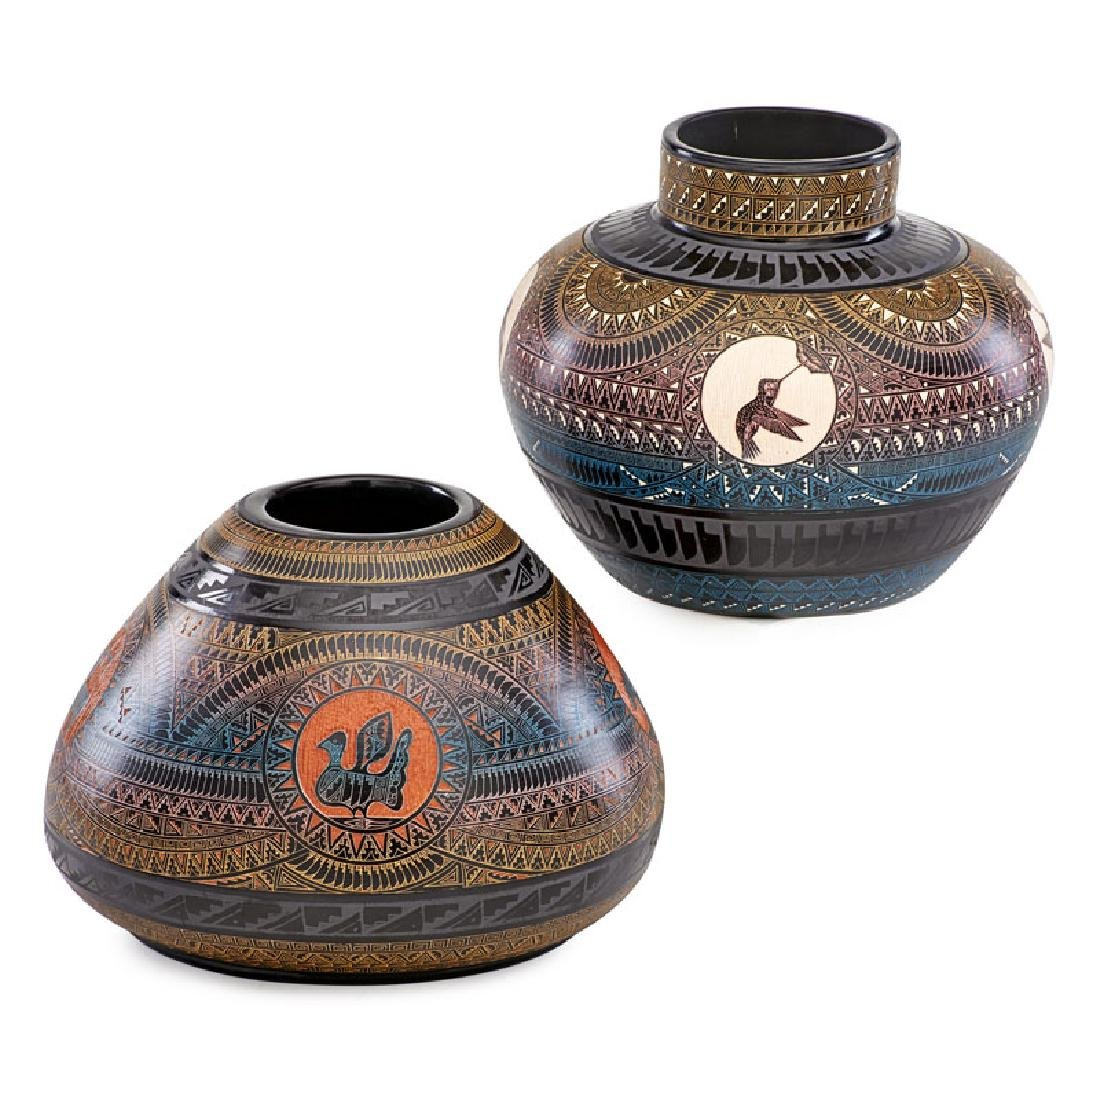 MARVIN BLACKMORE Two hand-etched vases